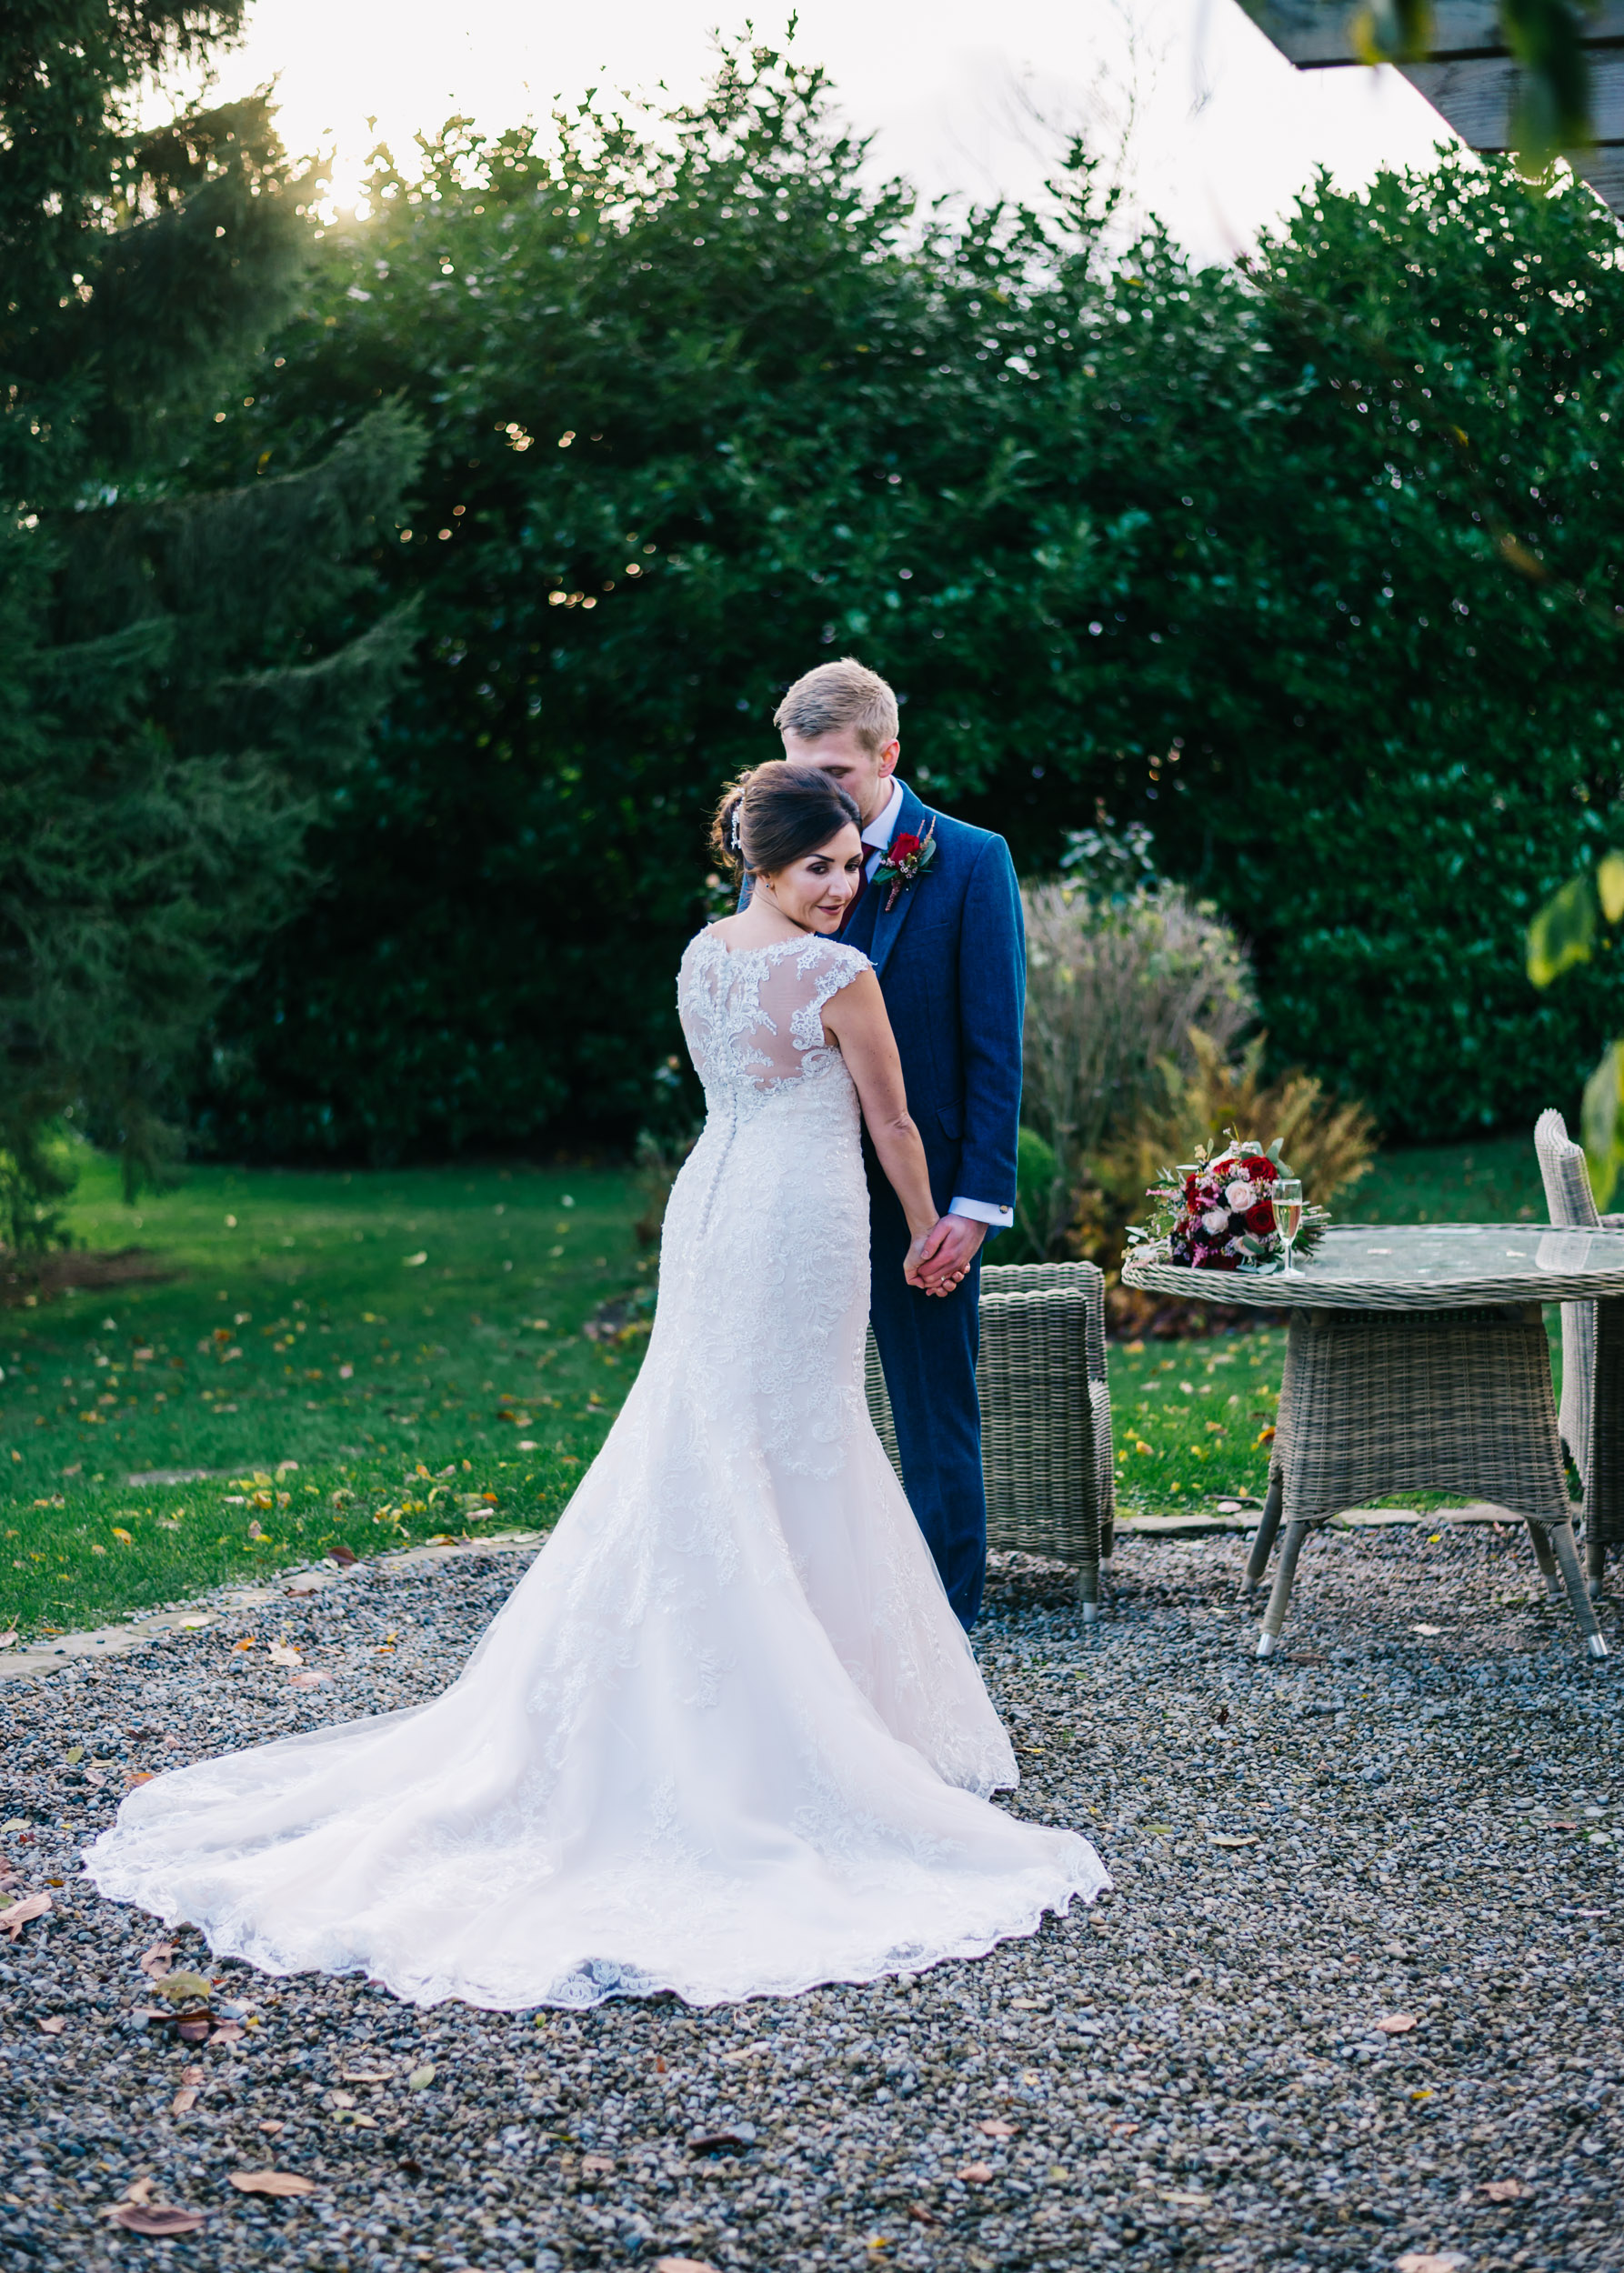 Ribble Valley Wedding Photographer - Shireburn Arms Lancashire